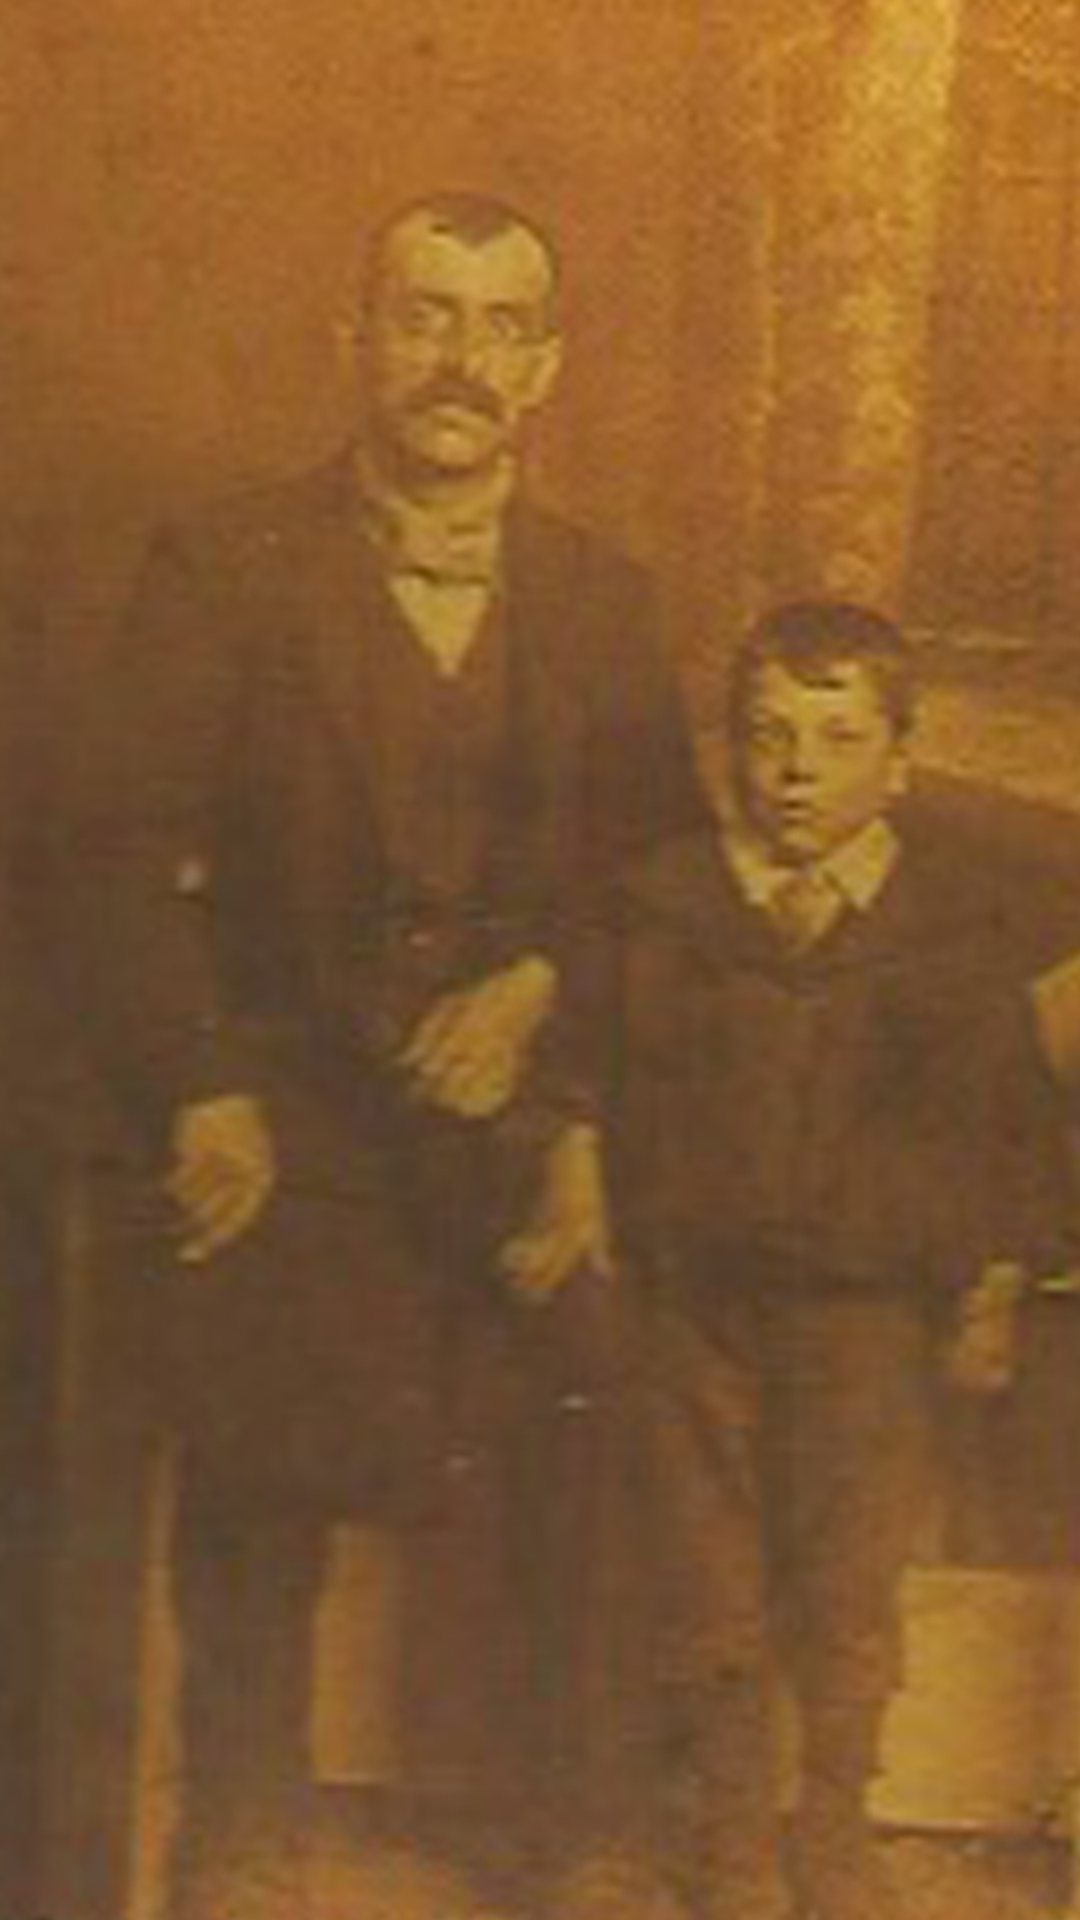 Walter, Joe's father, and one of his other sons